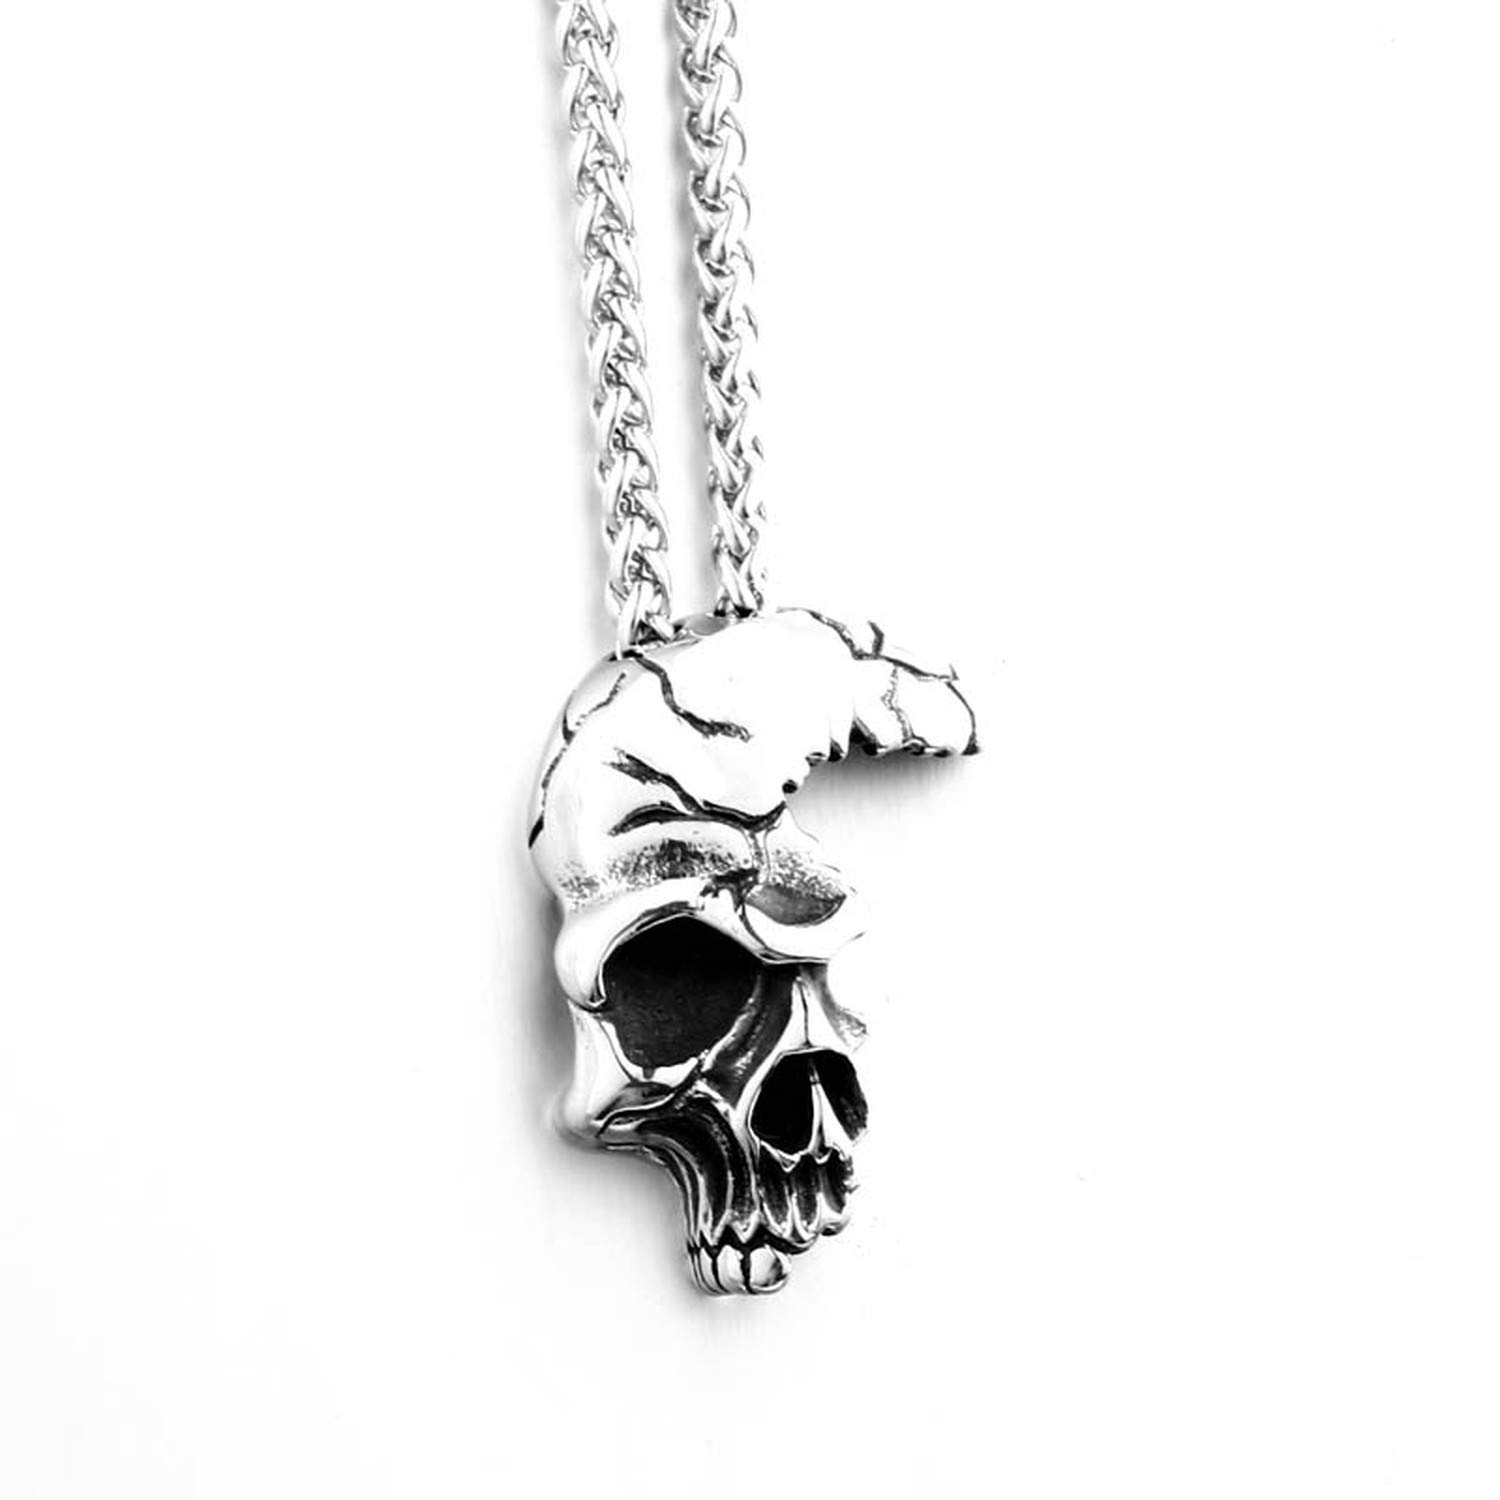 Elegant-Store-A Ugly Punk Half Skull face Necklace Stainless Steel Man Pendant Unique Party Jewelry Titanium Steel Gift